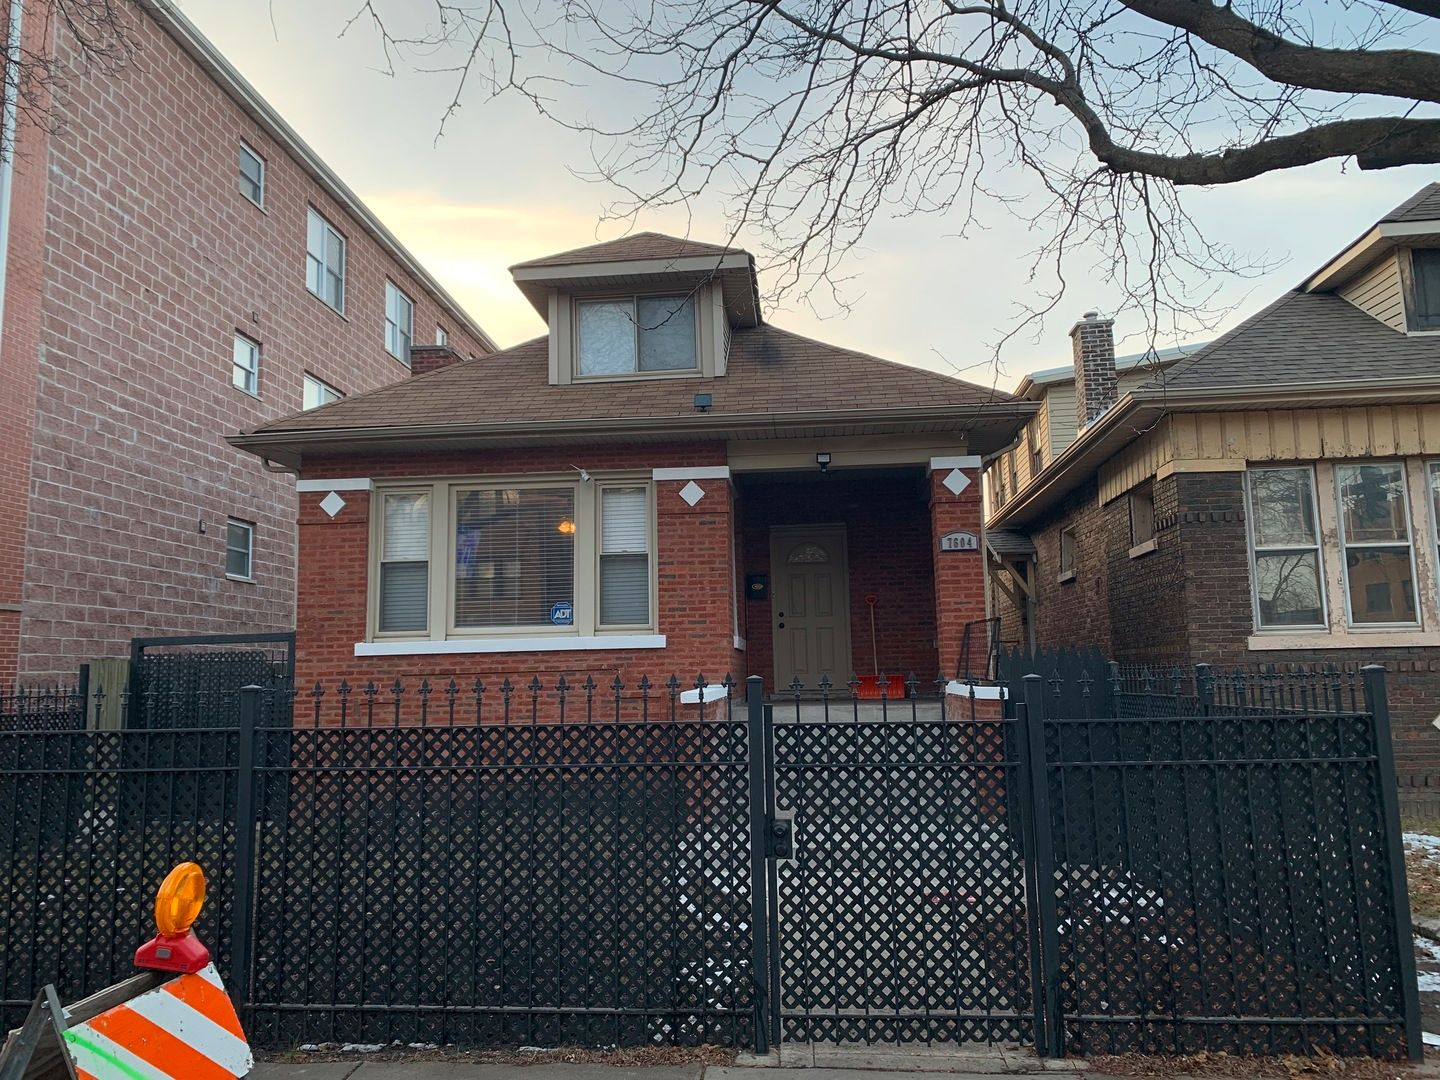 Main Photo: 7604 S Yates Boulevard in Chicago: CHI - South Shore Residential for sale ()  : MLS®# 11112440